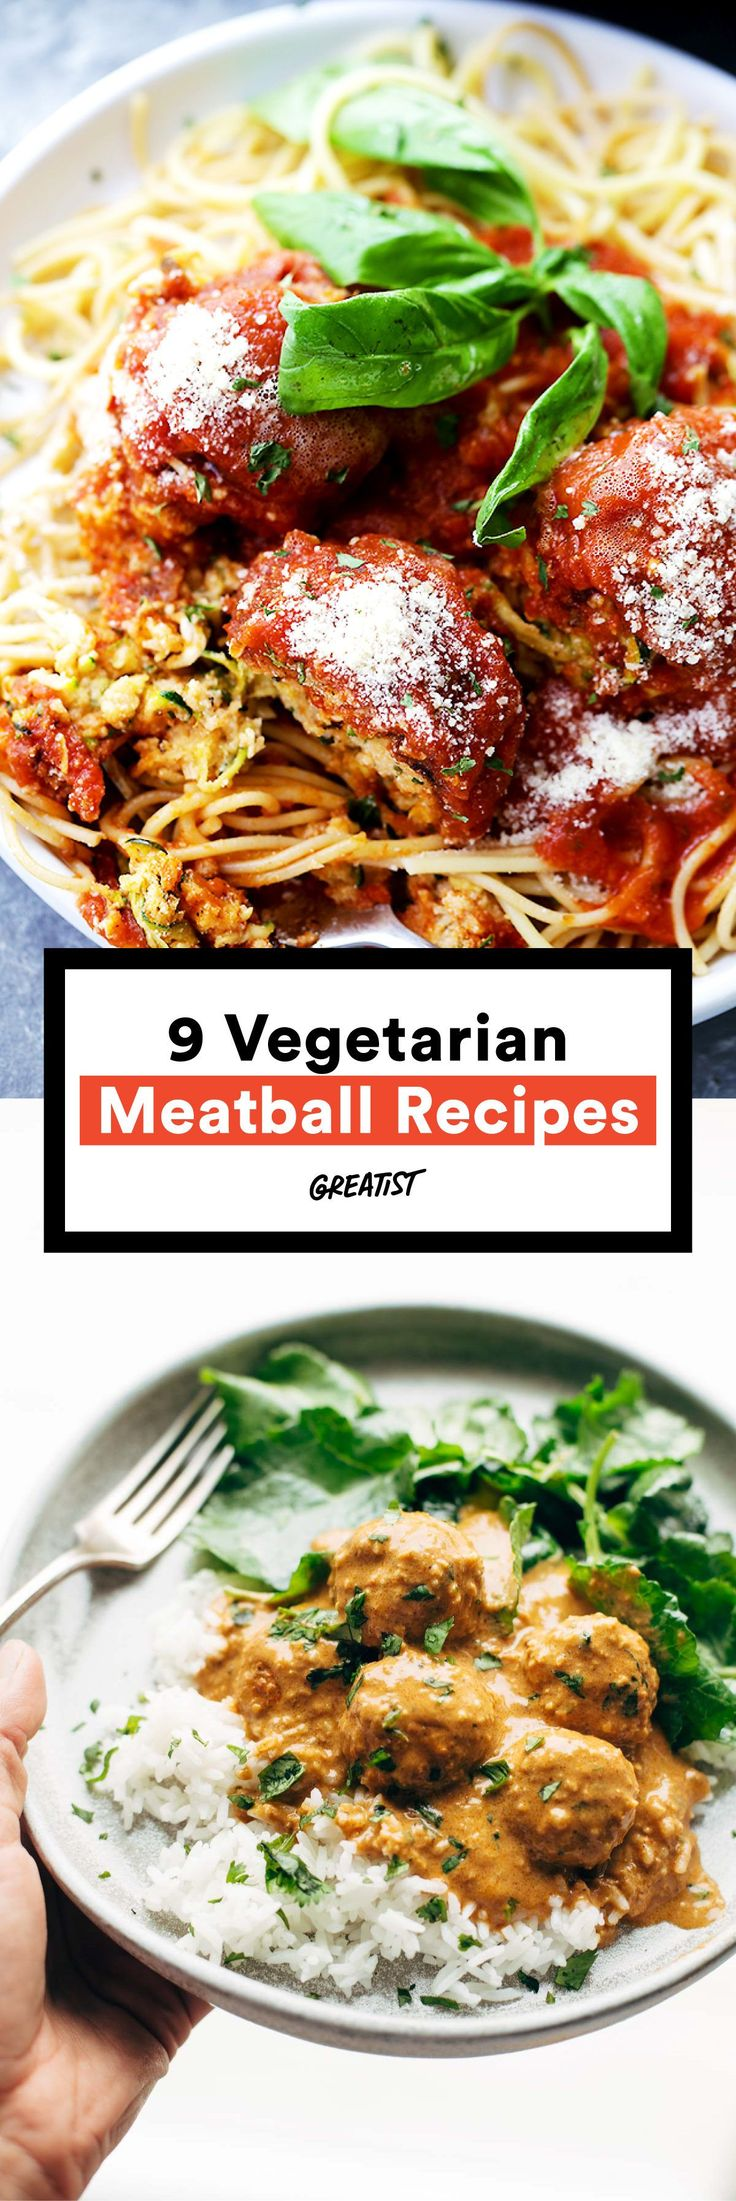 Say hello to your new fave Meatless Monday meal. #greatist http://greatist.com/eat/vegetarian-meatball-recipes